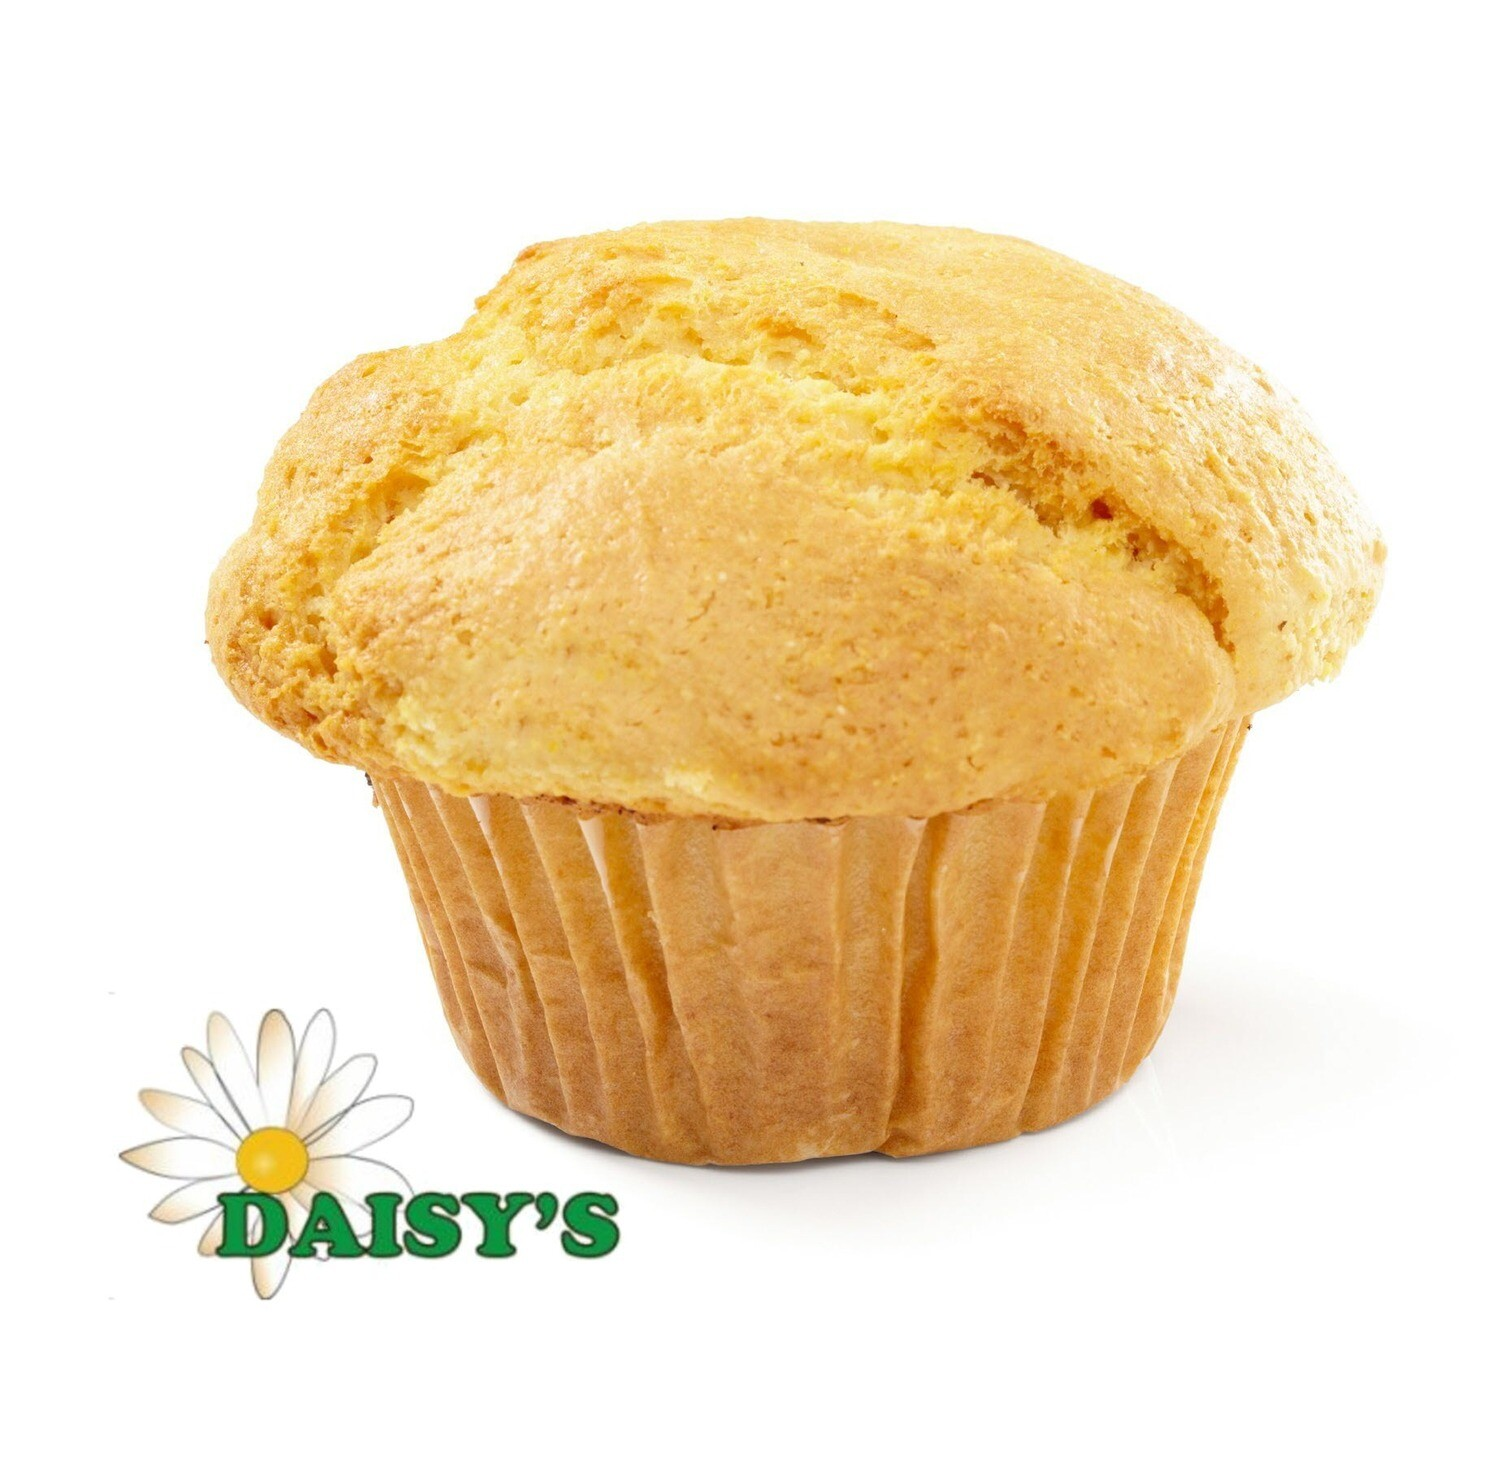 * Daisy's Bakery Individually Wrapped Corn Muffin 12 Count